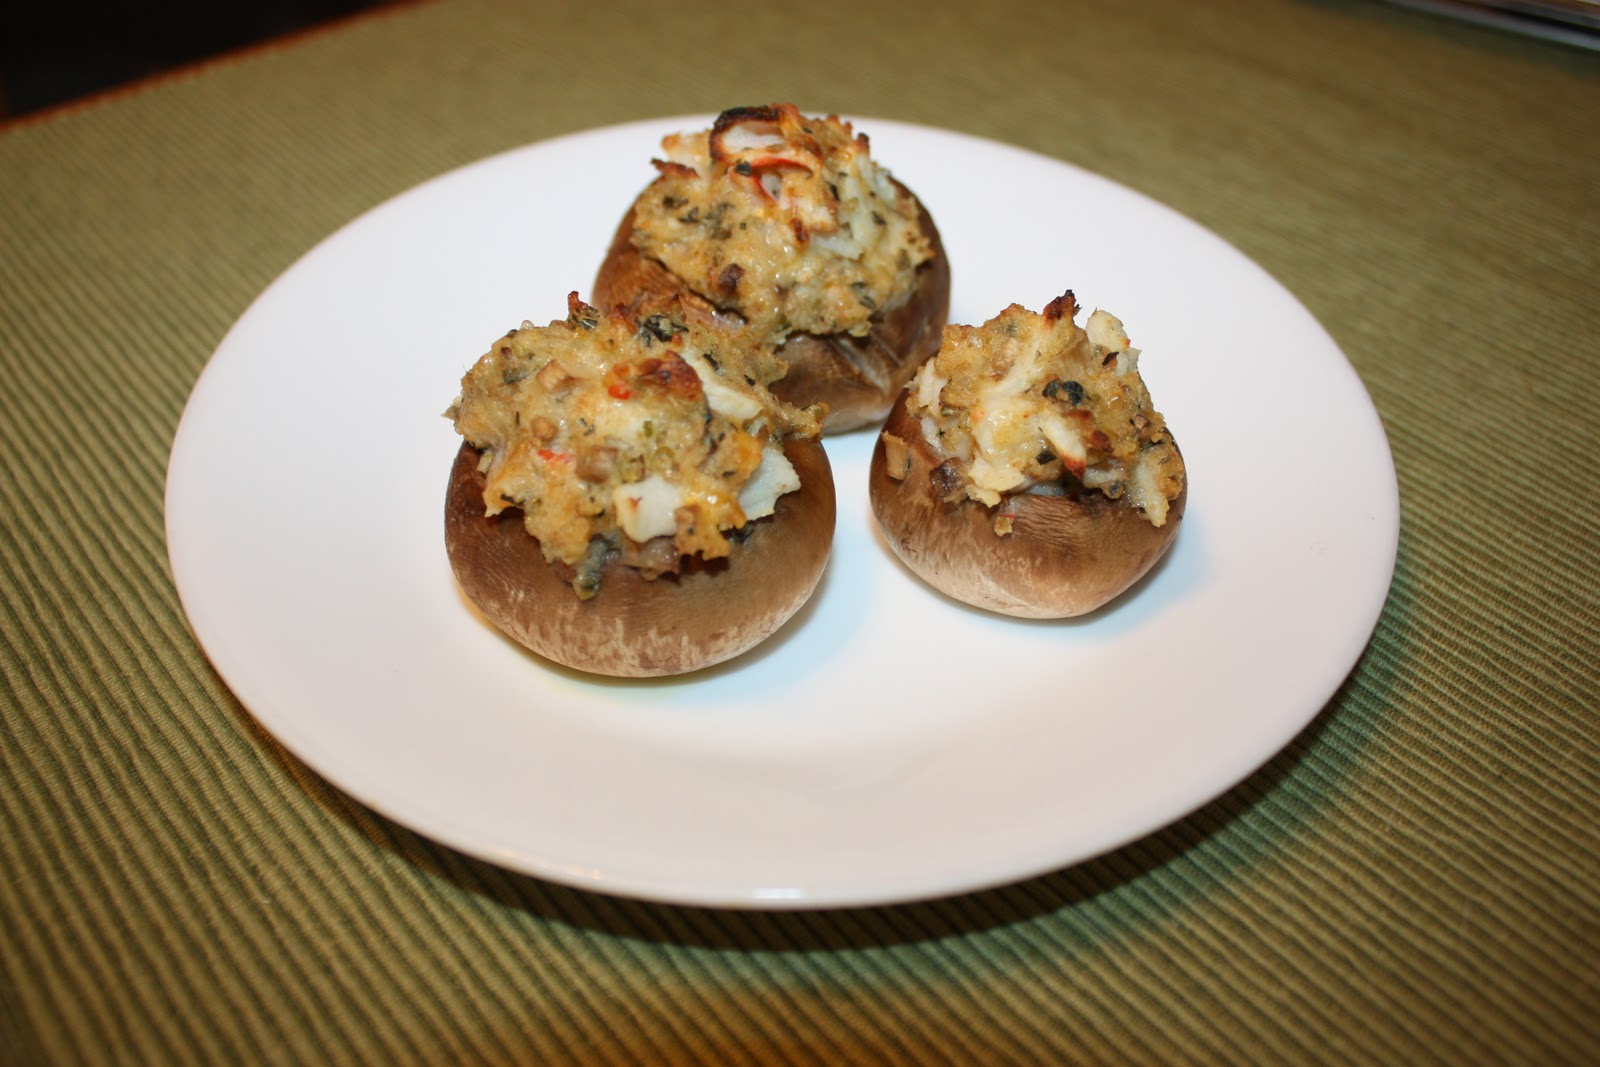 Olive The Ingredients: Crab-Stuffed Mushrooms